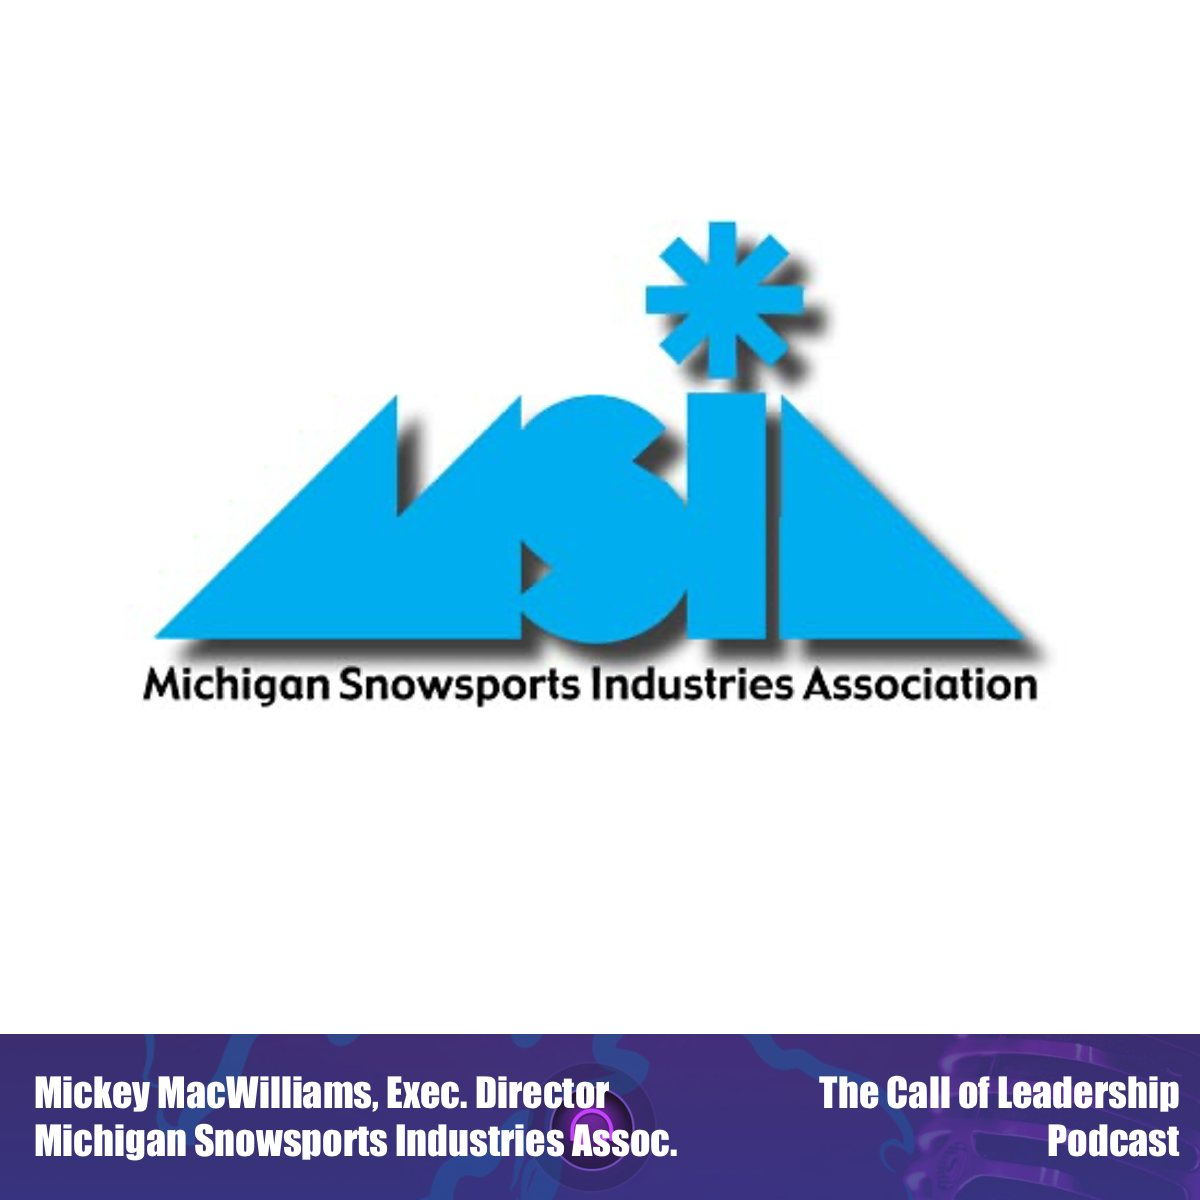 Michigan Snowsports Industries Association